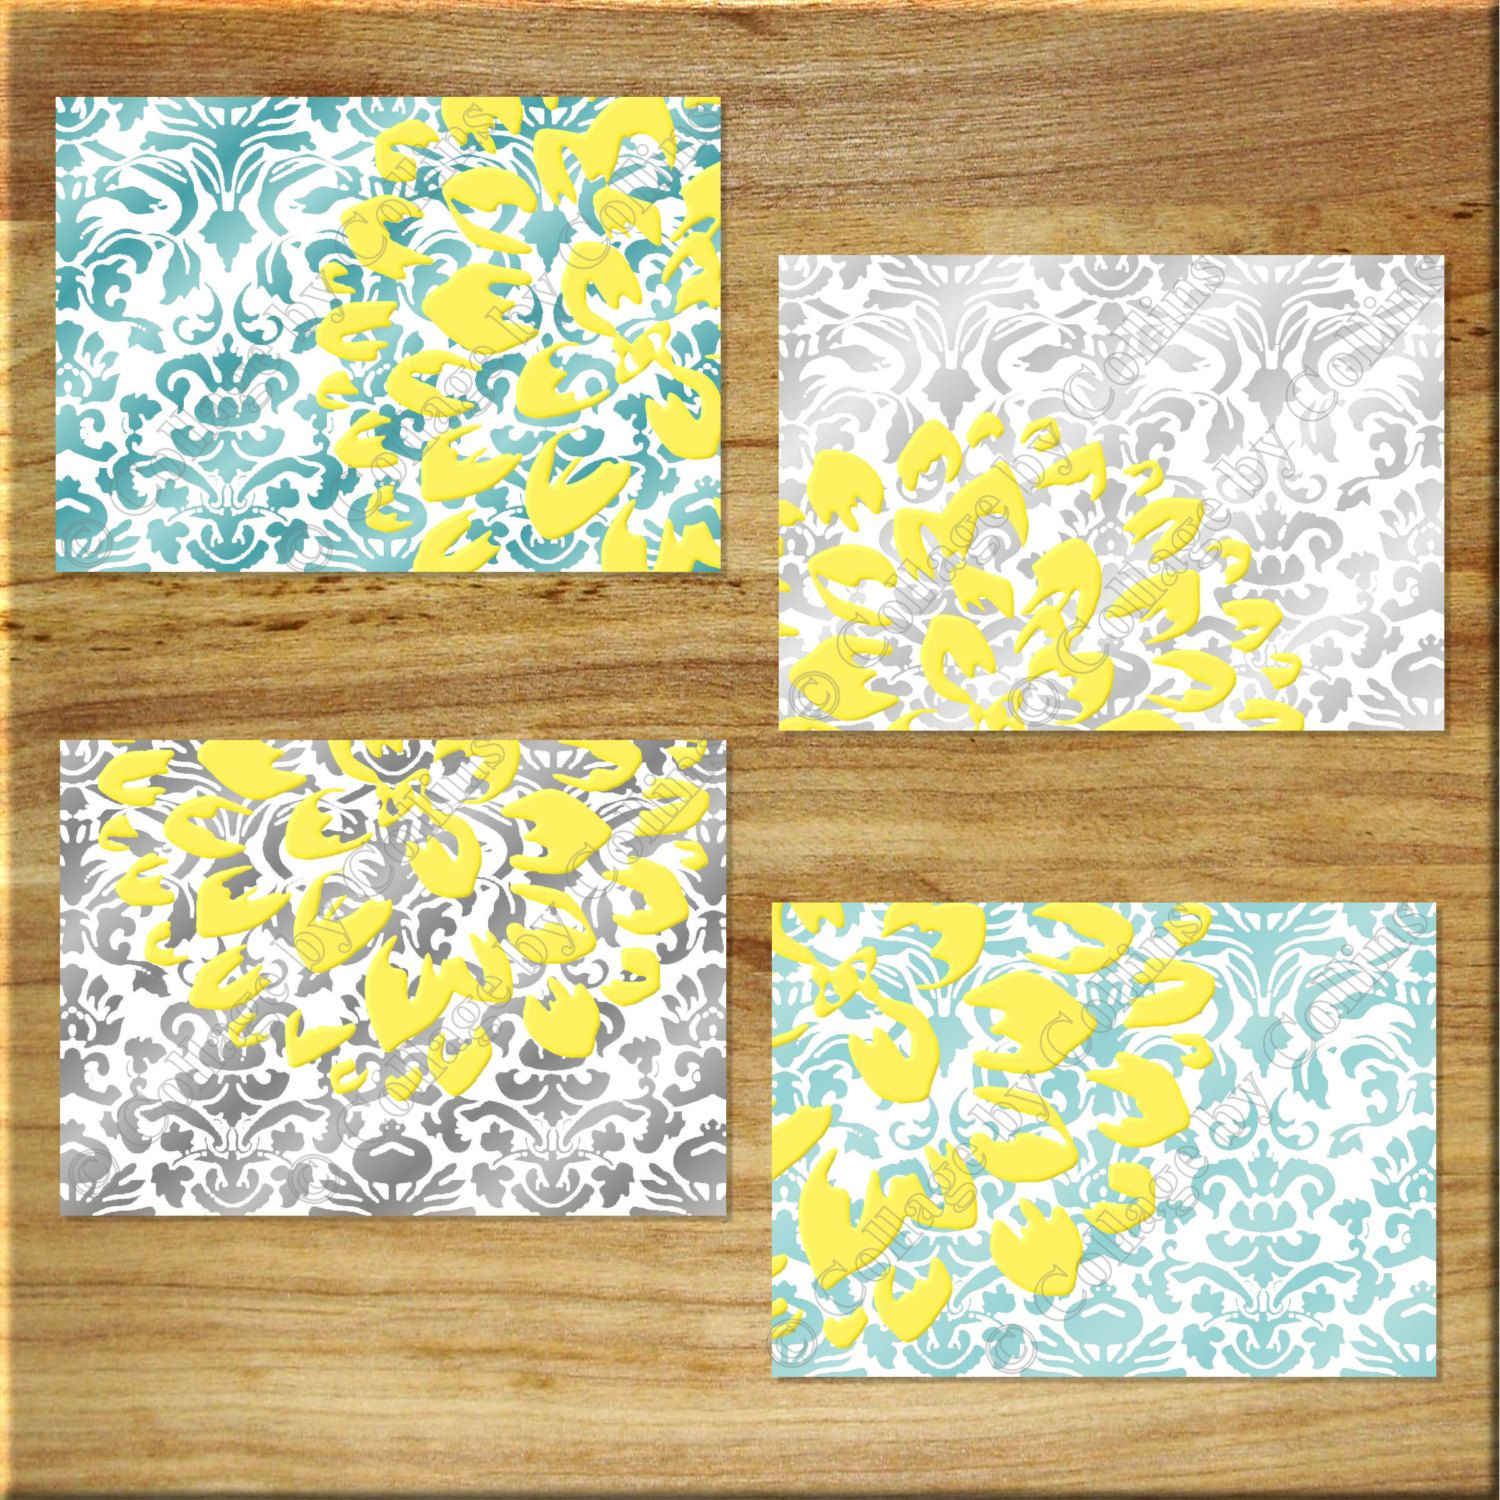 DAMASK design Teal Aqua Gray Yellow Wall Art Prints Decor Flo ...